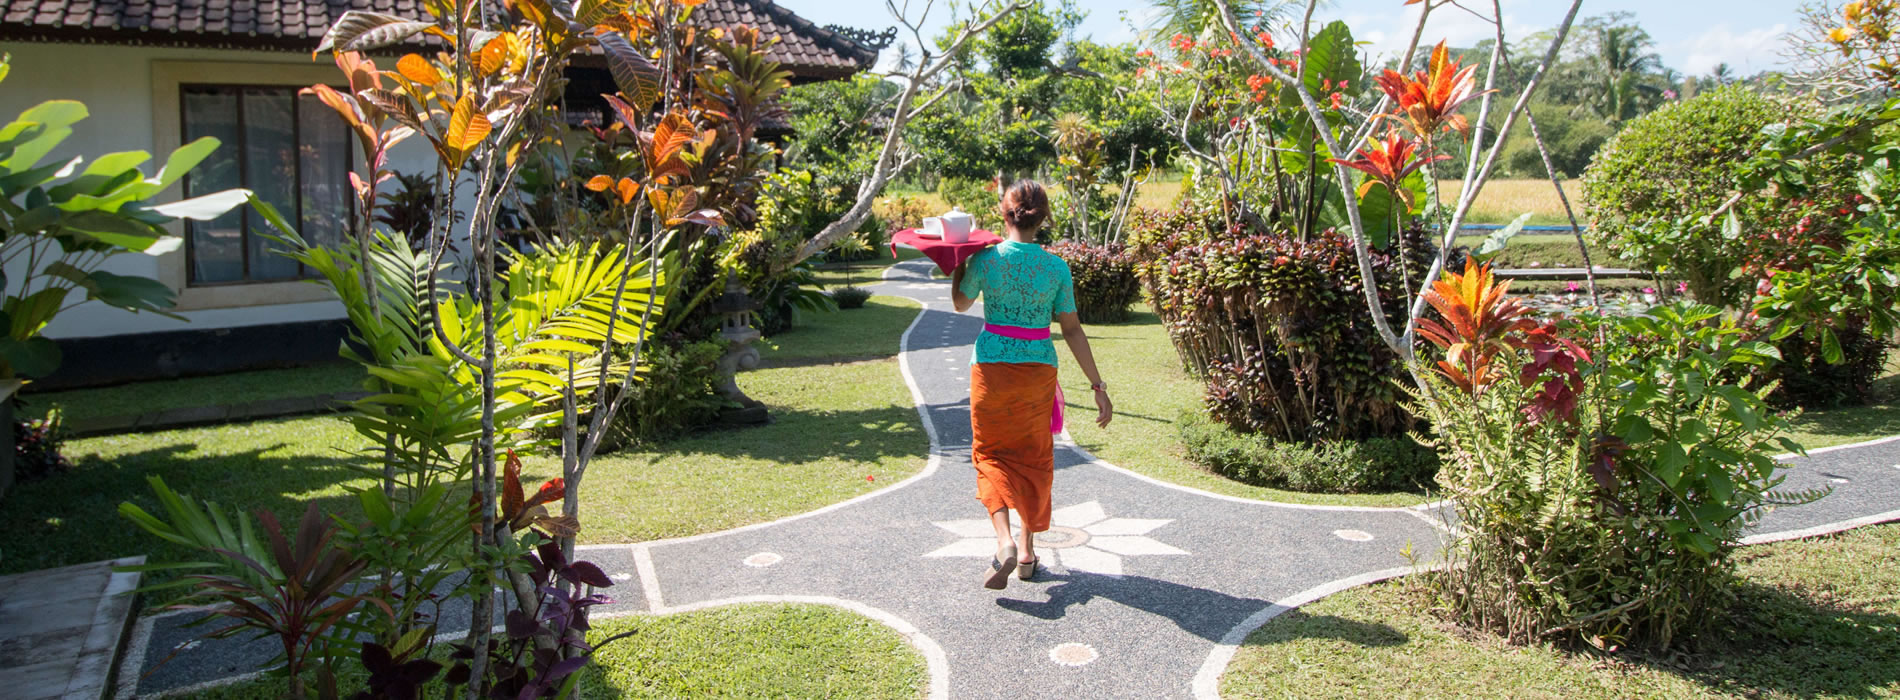 activity_villatamandiblayubali_04.jpg